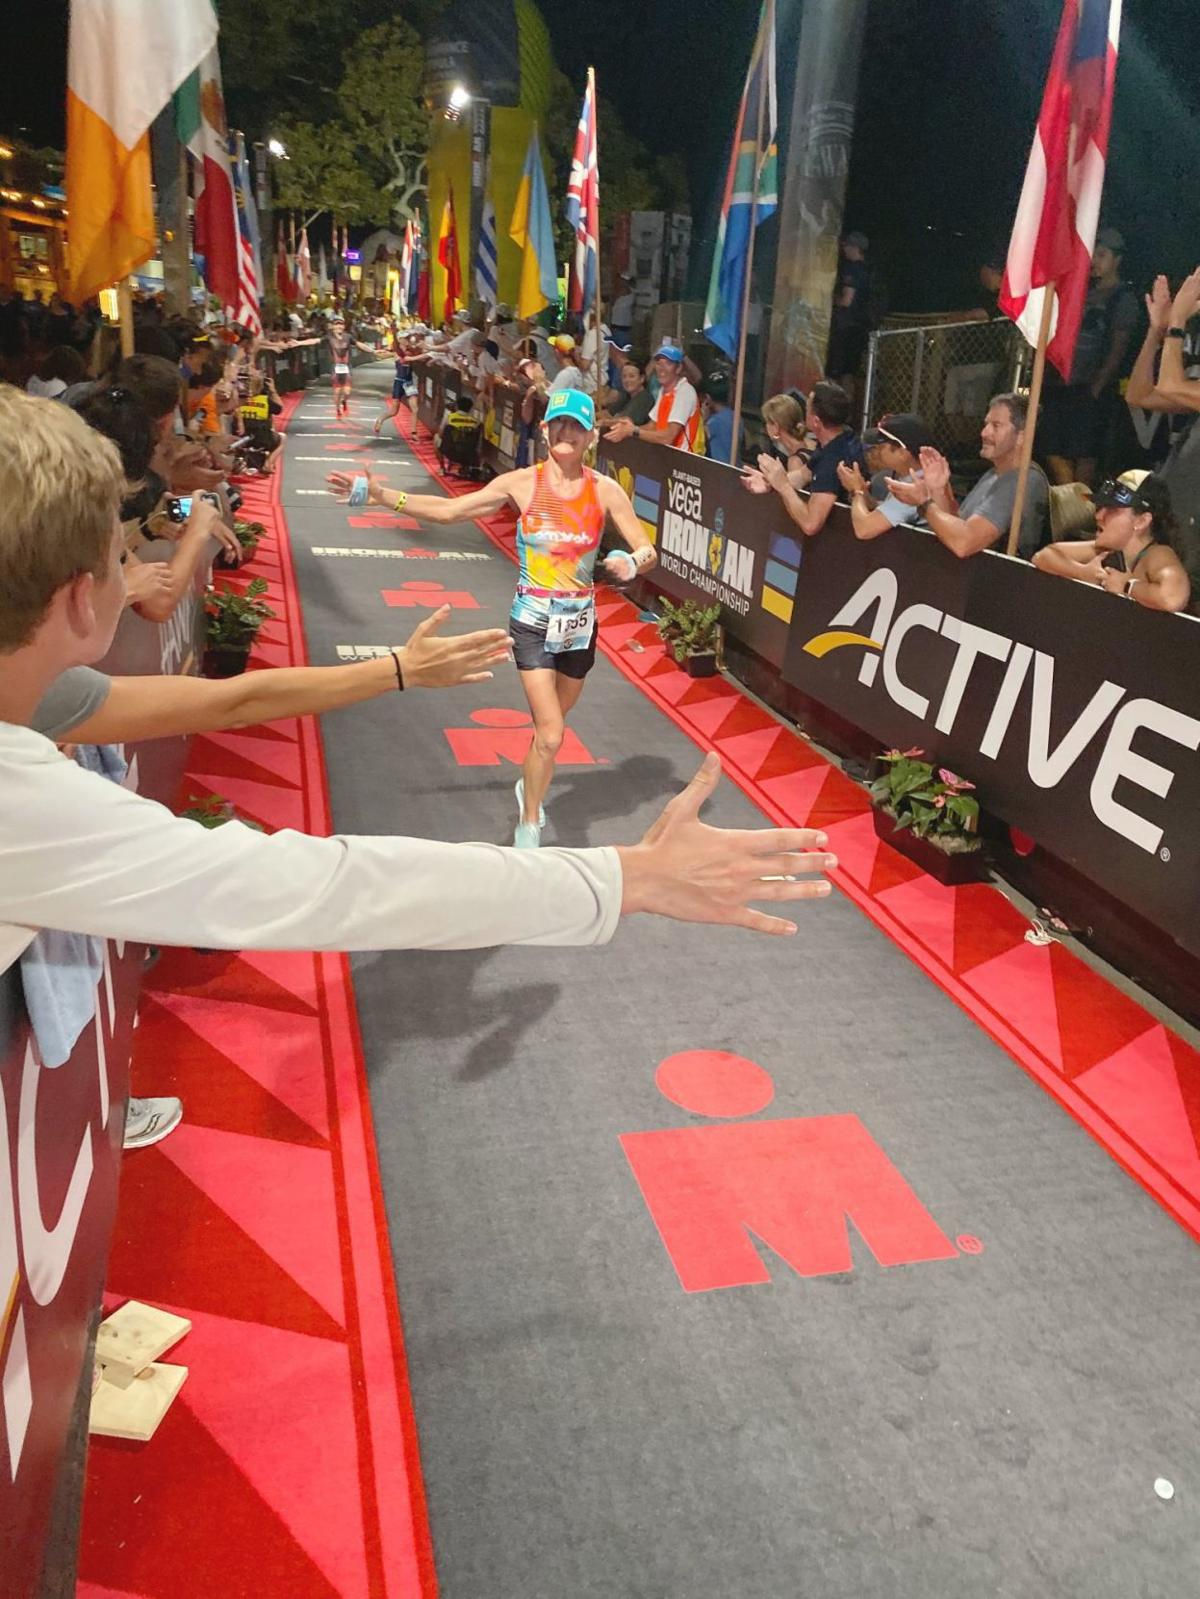 Sarah Gott at Ironman World Championship finish line